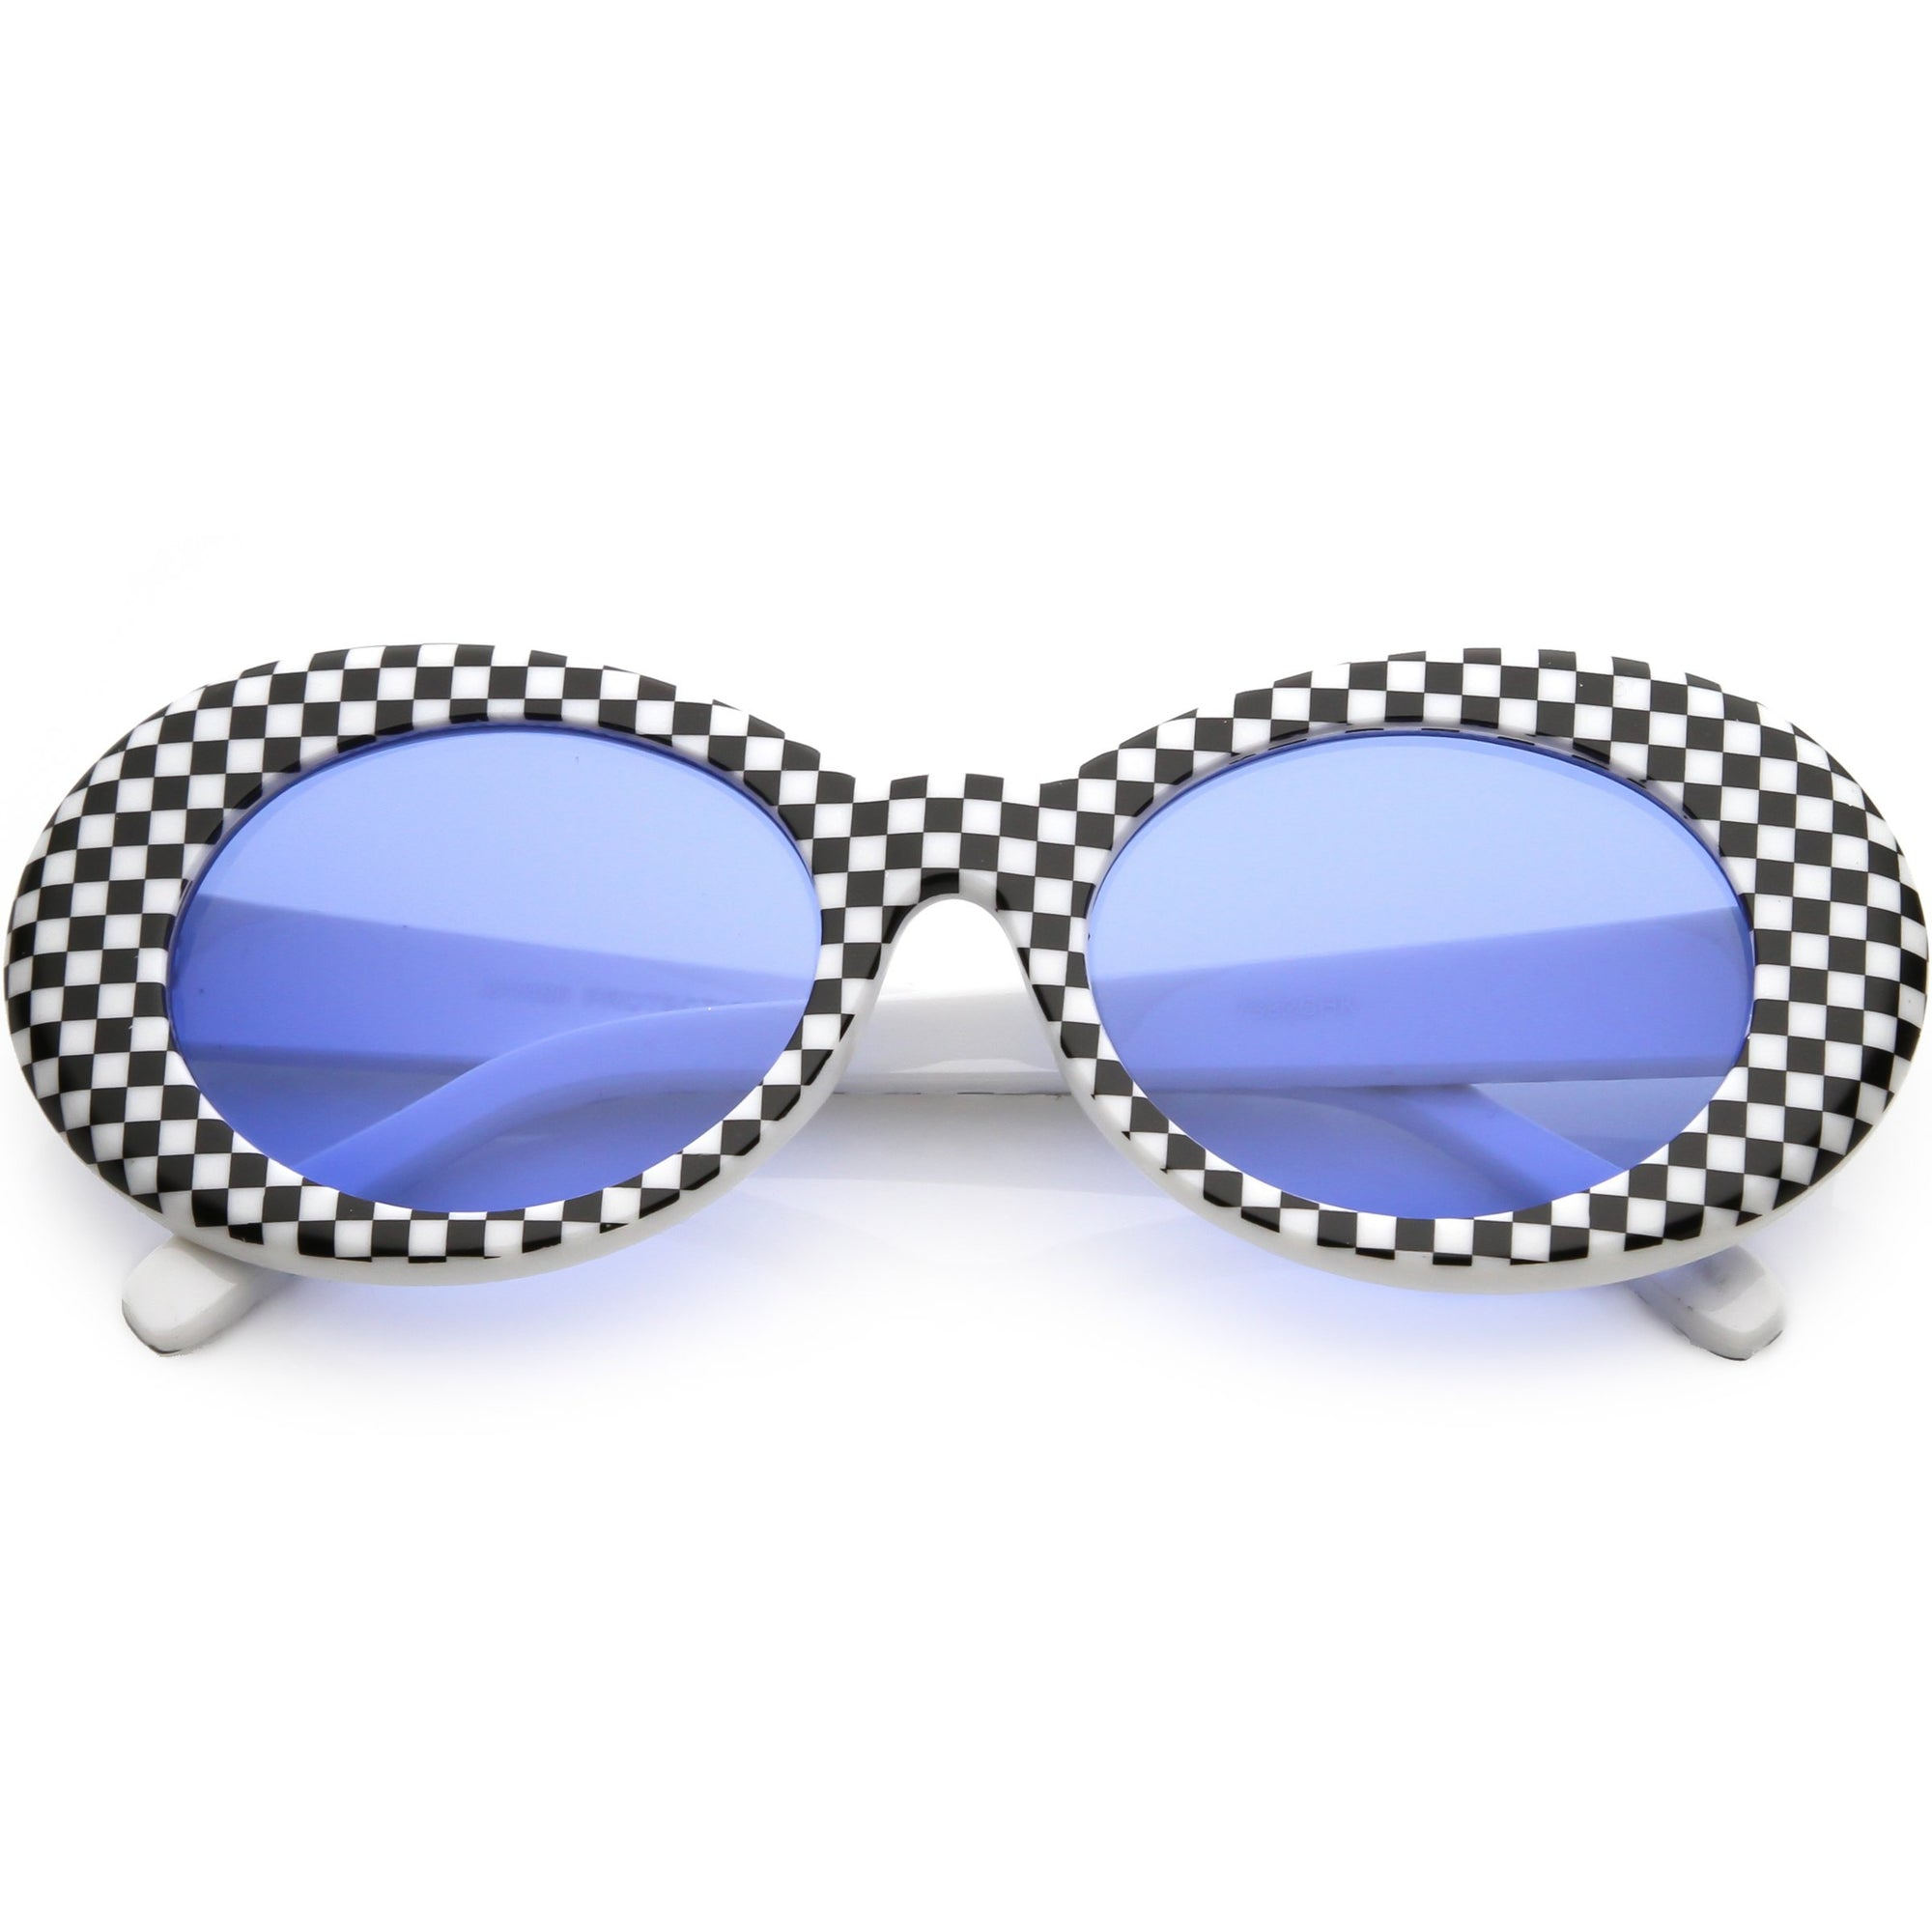 93dafd524bc ... Colored Lens Oval Sunglasses C488 · Checkered Yellow · Checkered Yellow  · Checkered Yellow · Checkered Yellow · Checkered Pink · Checkered Blue